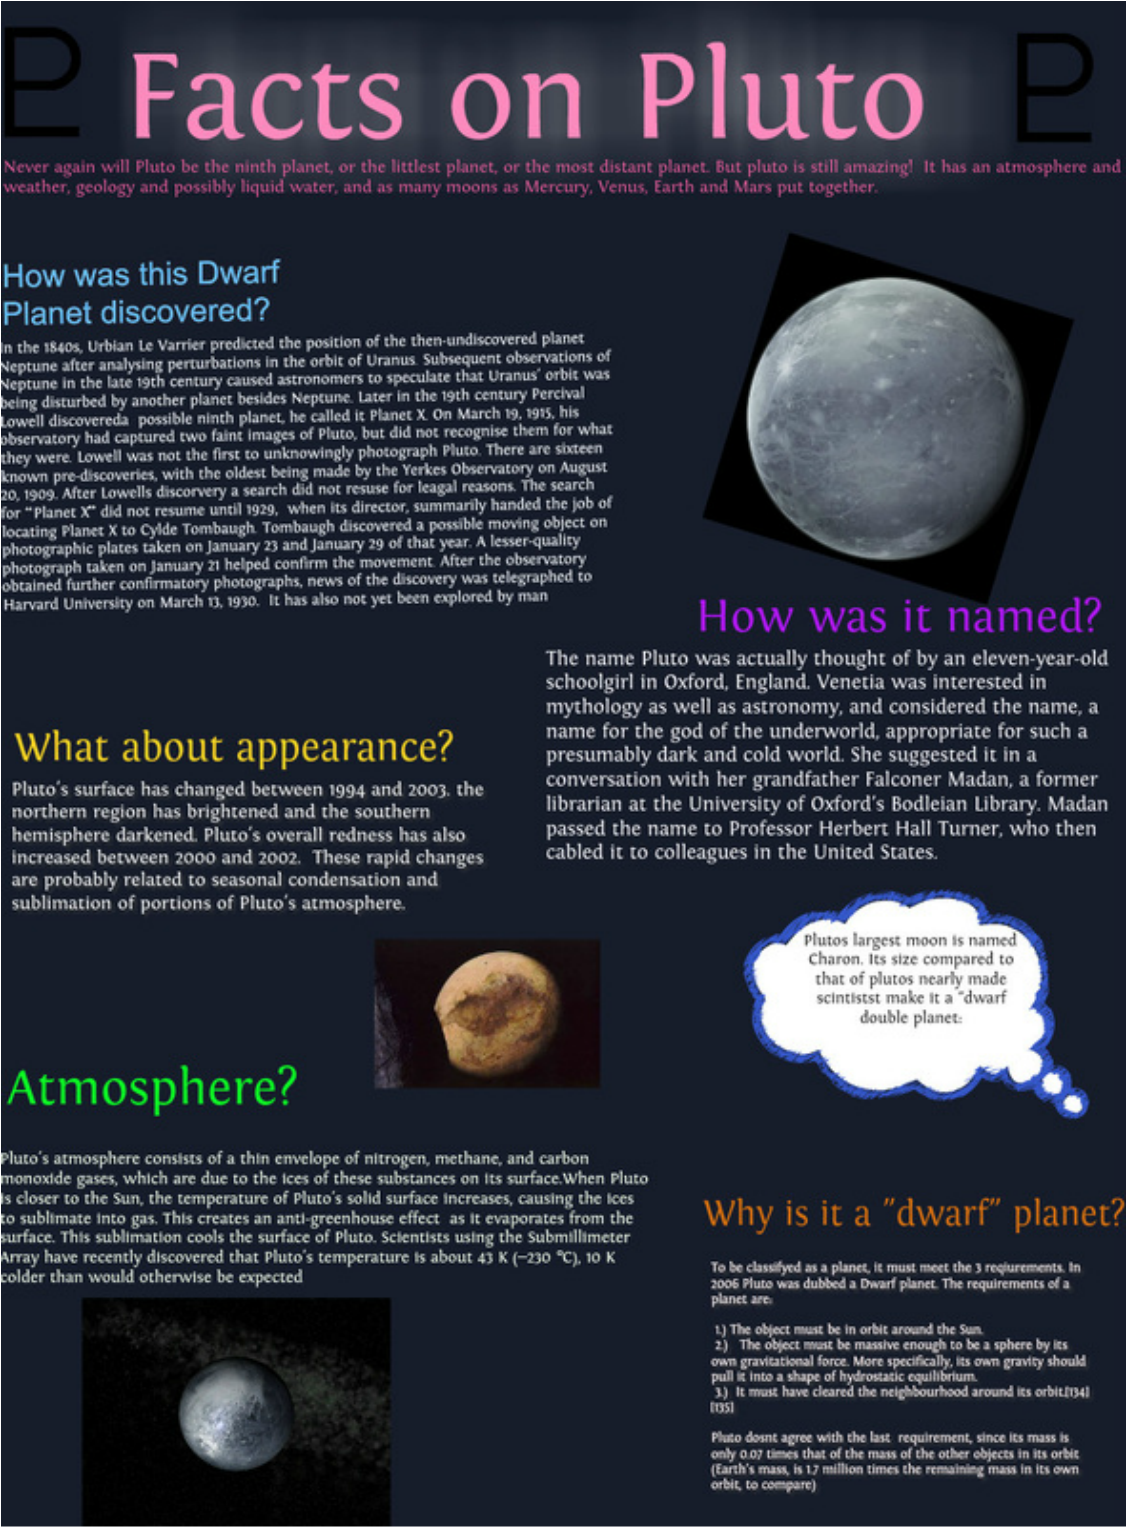 Pluto Has A Heart Love Him Back: Some Facts About Pluto